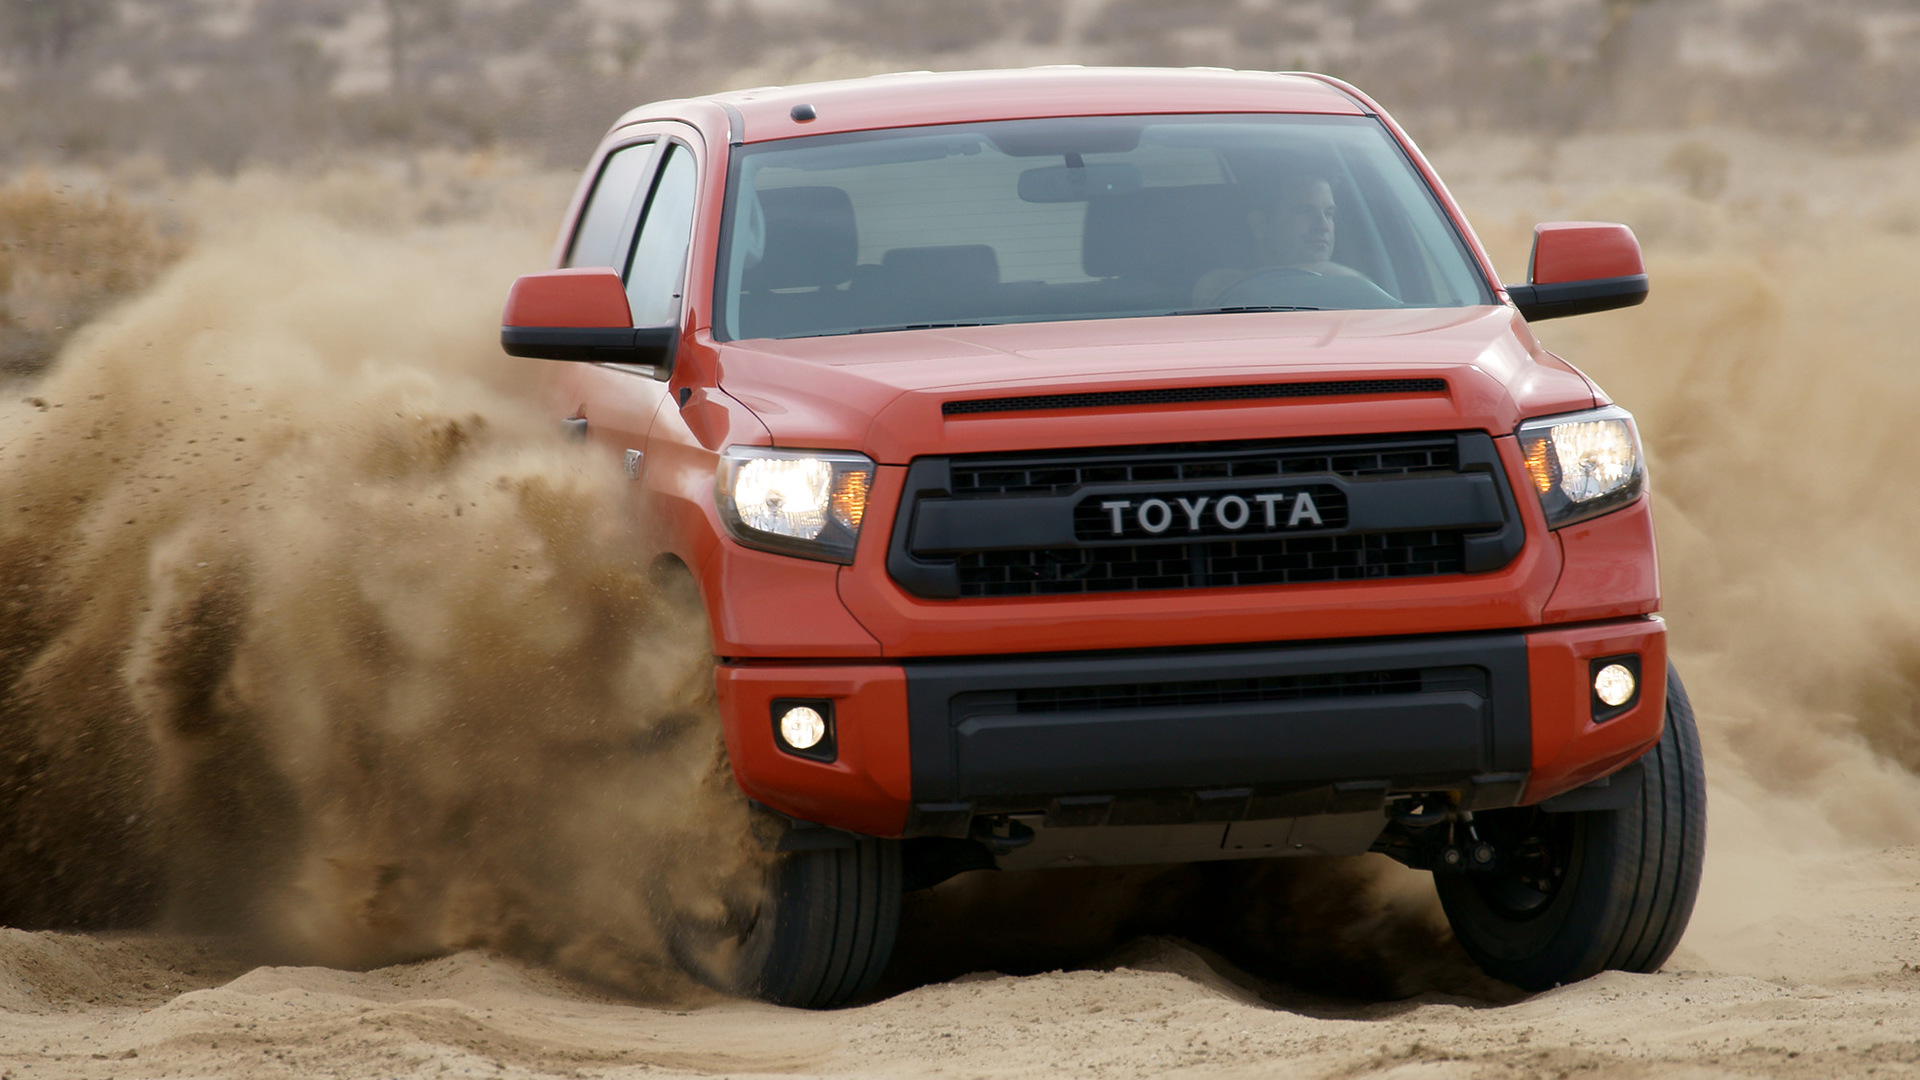 TRD Toyota Tundra Double Cab Pro 2014 Wallpapers And HD Images